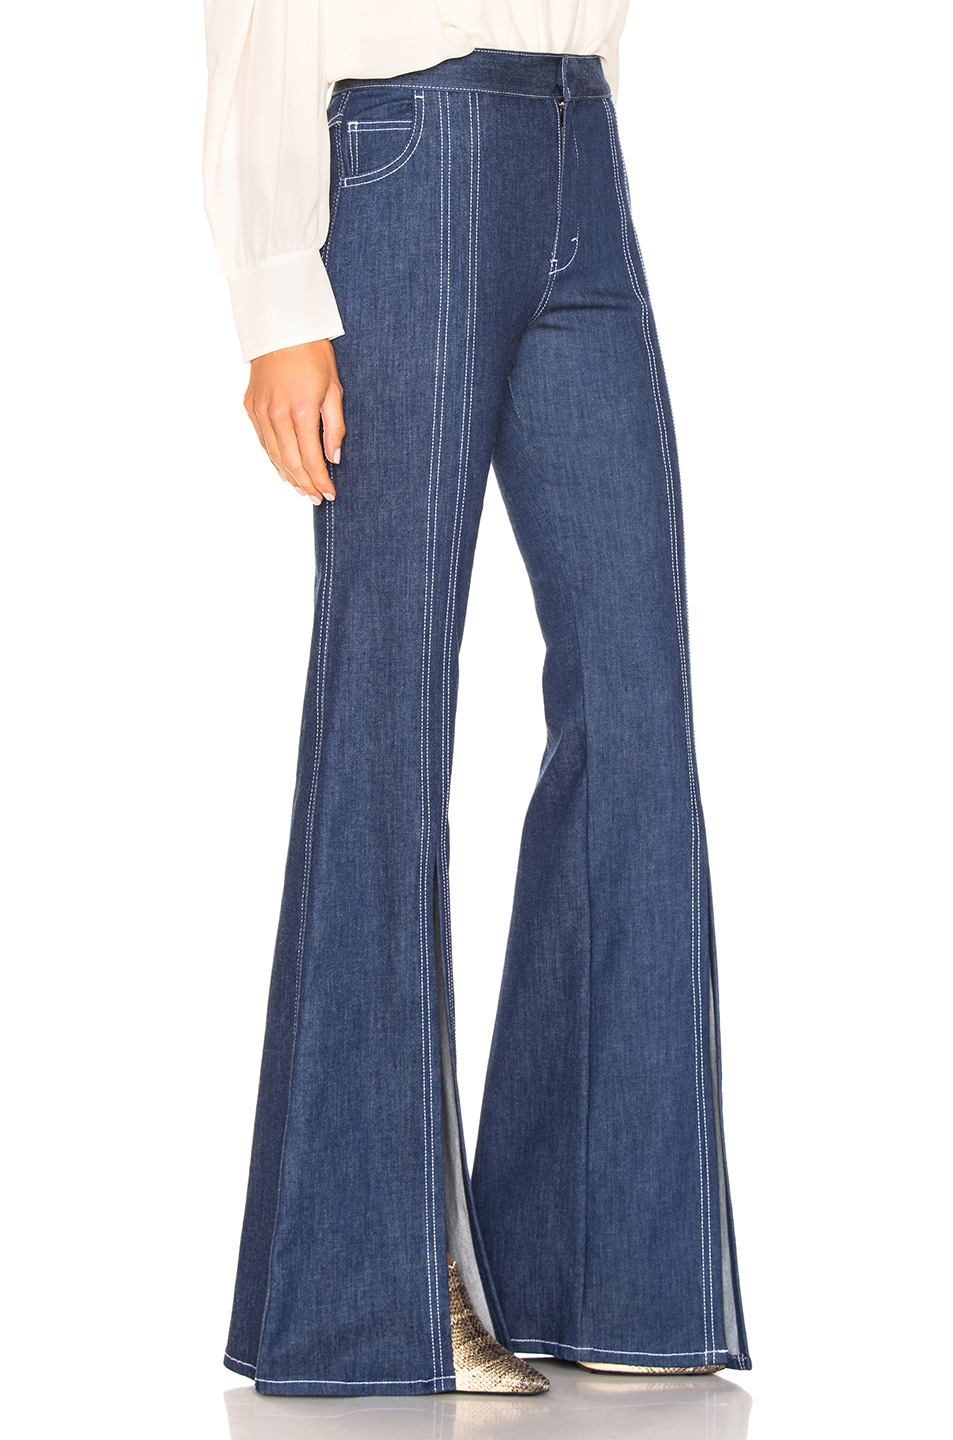 Image 2 of Chloe Flare Jean in Denim Blue